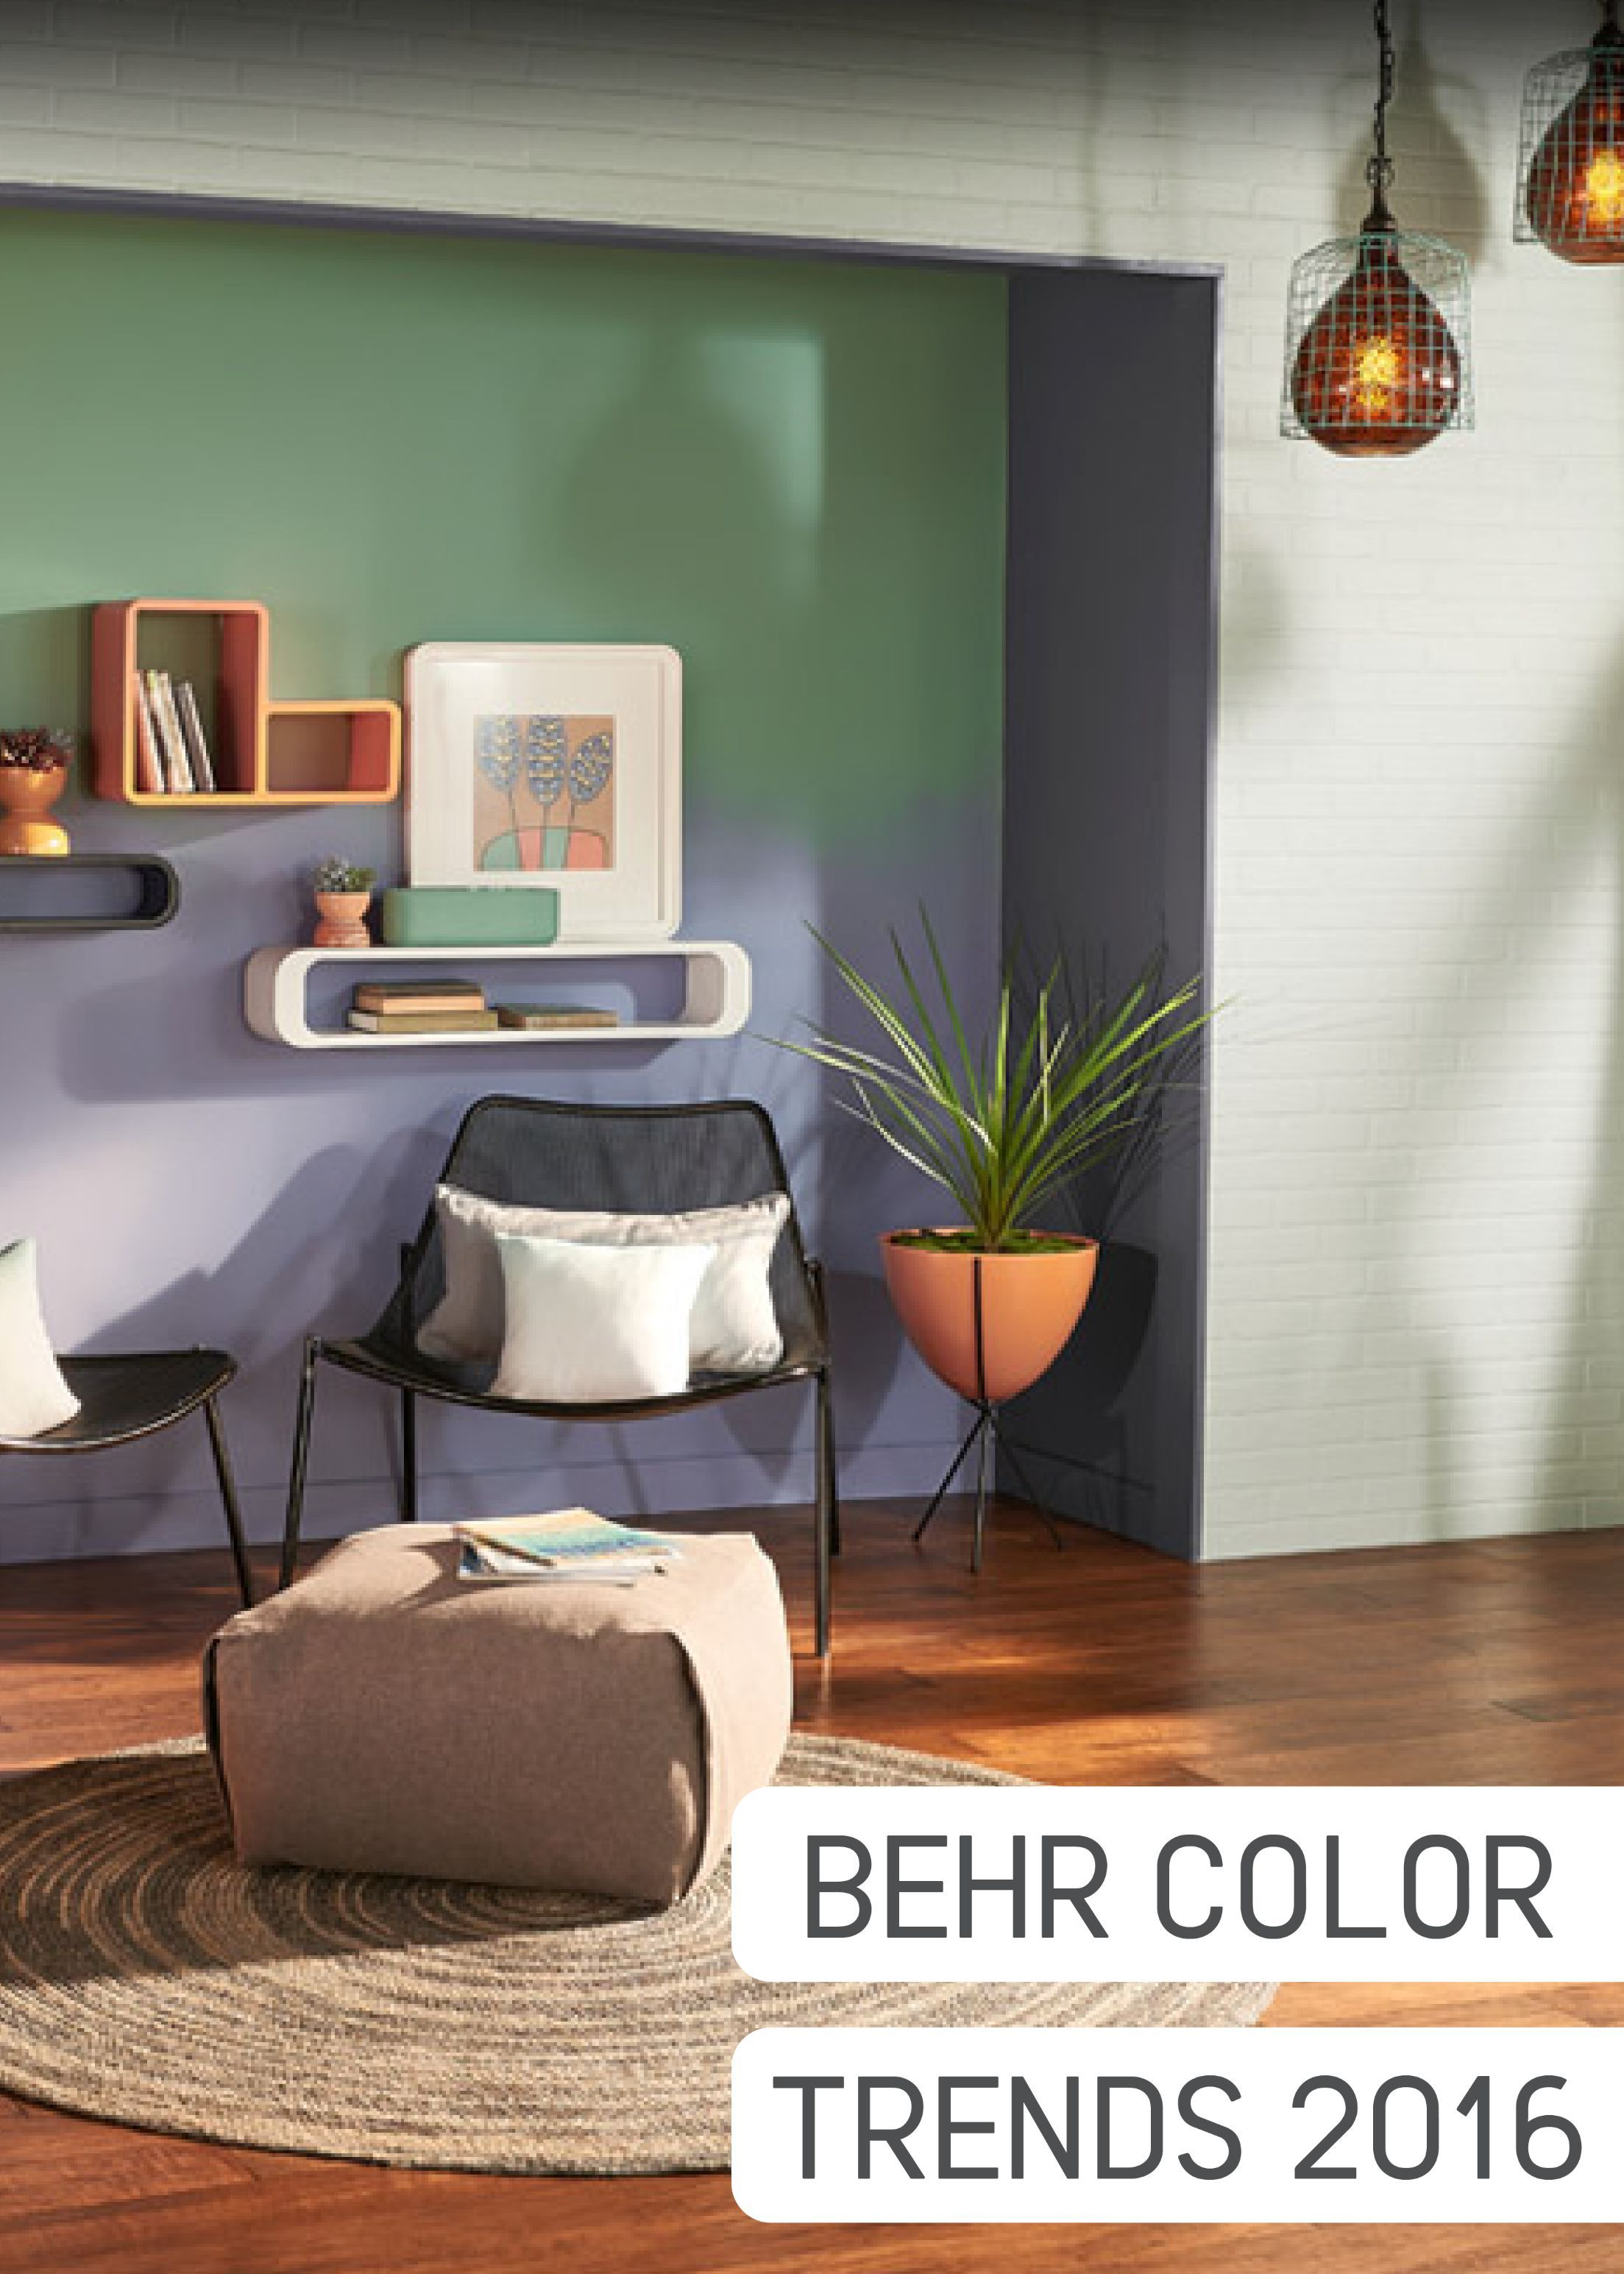 Copper Accent Wall Behr Modern Mint Green And Stratus Blue Create A Stunning